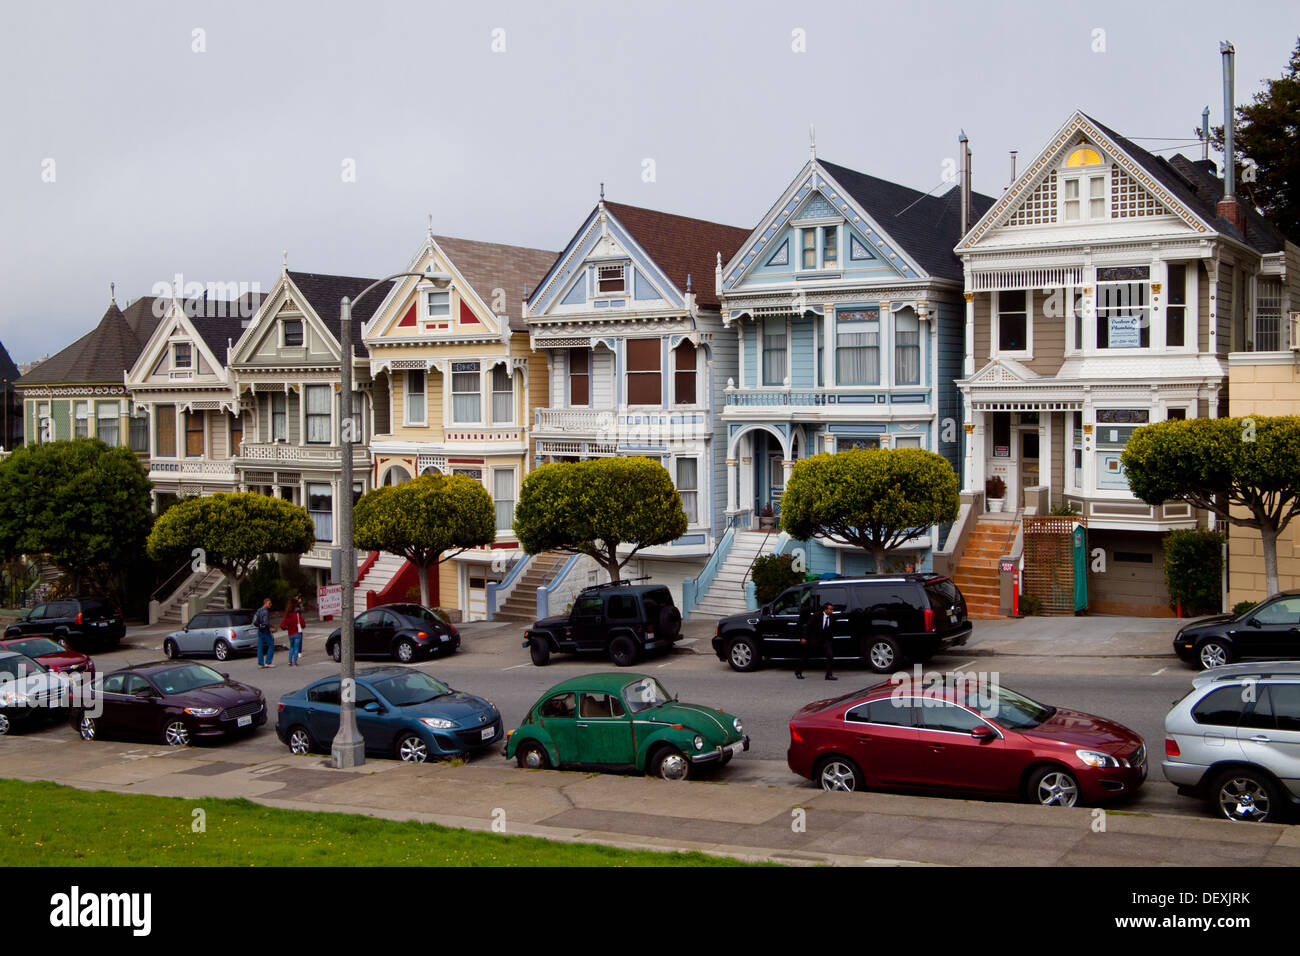 The famous Painted Ladies row of Victorian Houses on Steiner Street at Alamo Square in San Francisco, California. - Stock Image